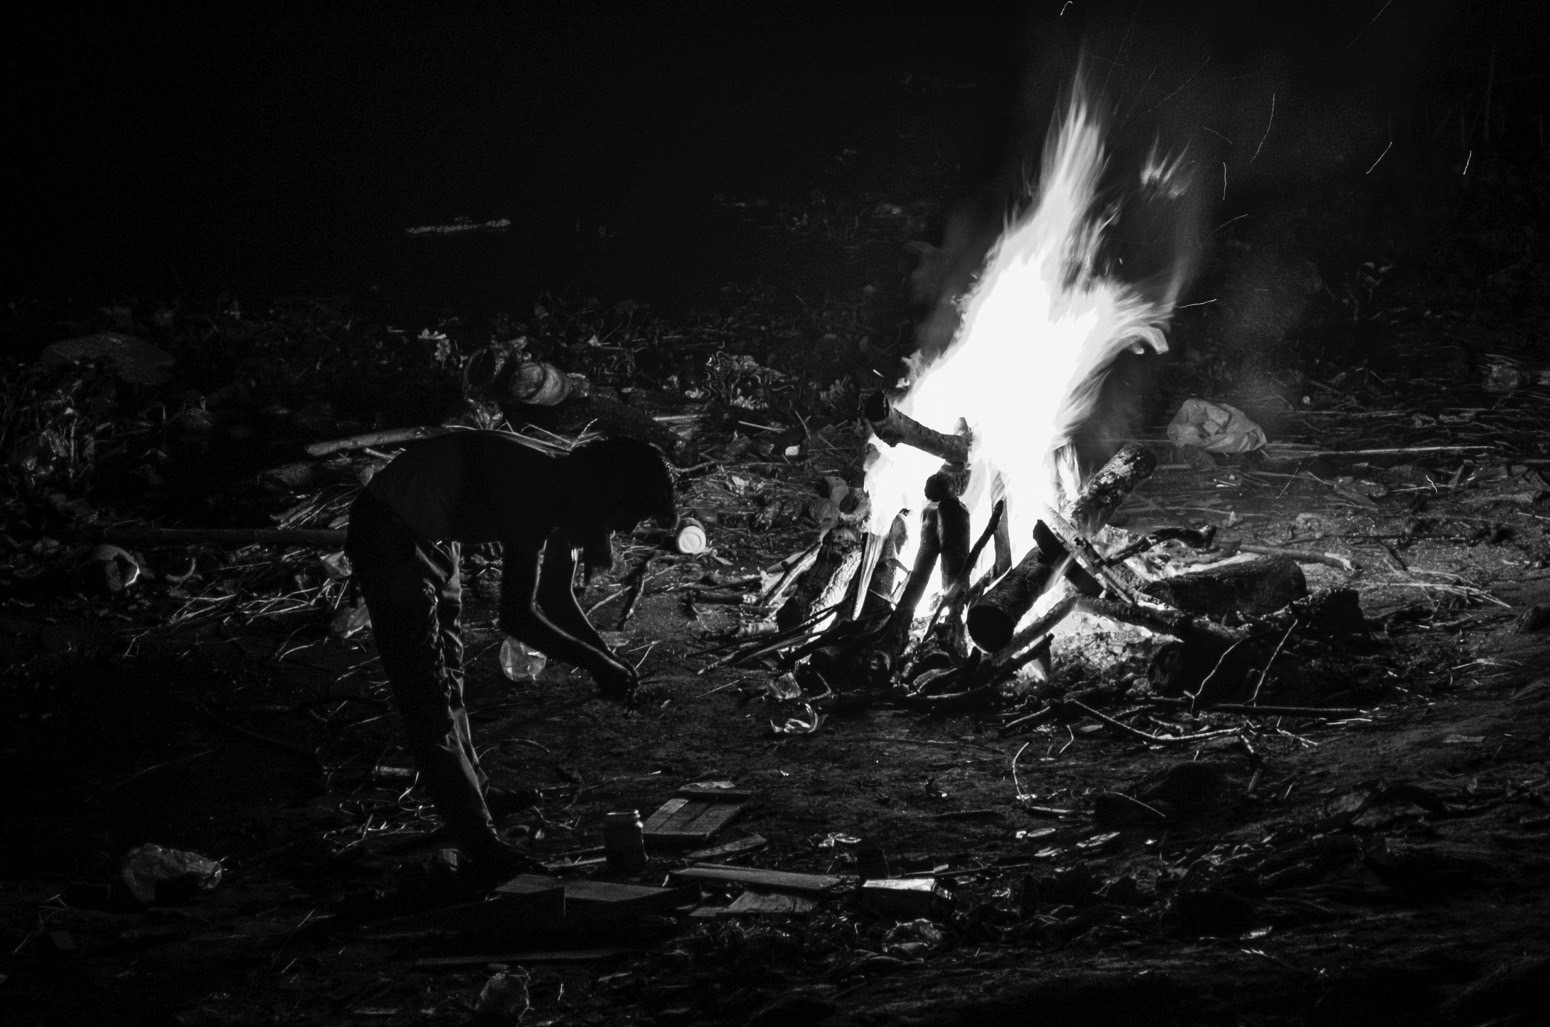 A pyre burner waits for the pyre to completely burn during night at the Ghat. Credit: Wamika Singh